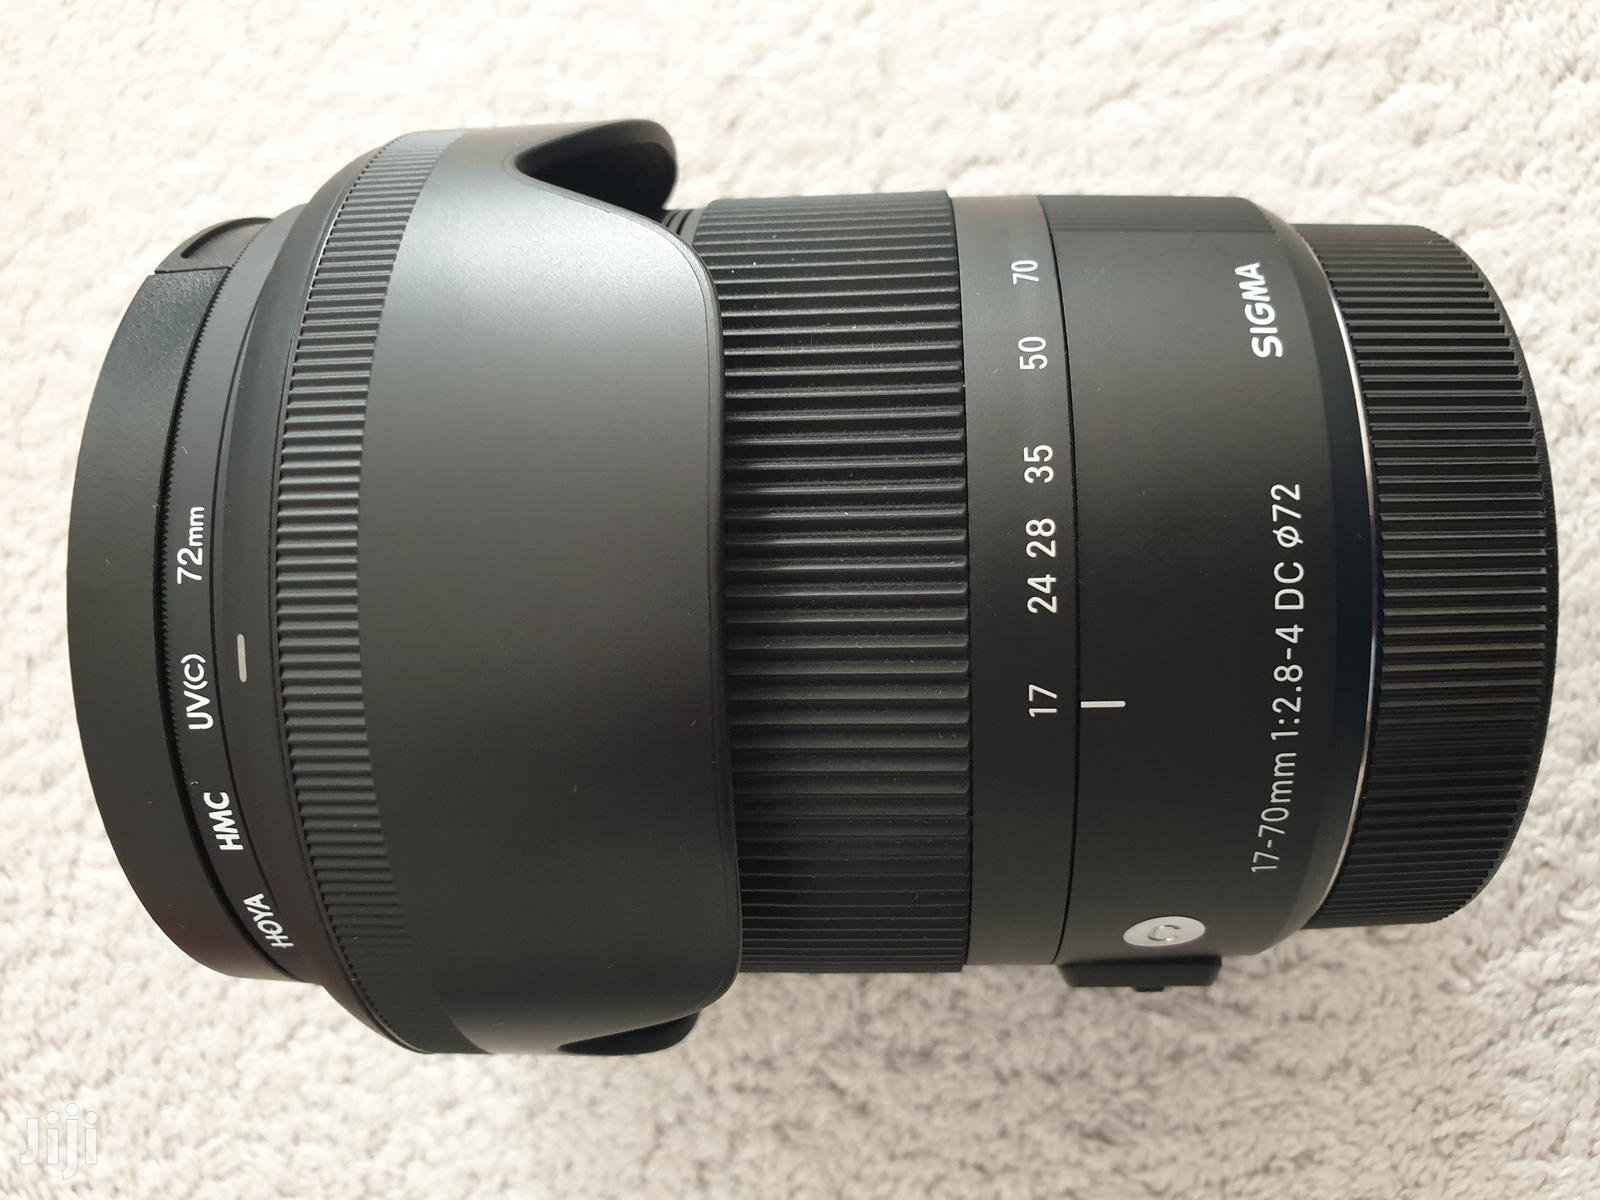 Canon Fit SIGMA 17-70mm F2.8-4 DC OS Contemporary Zoom Len